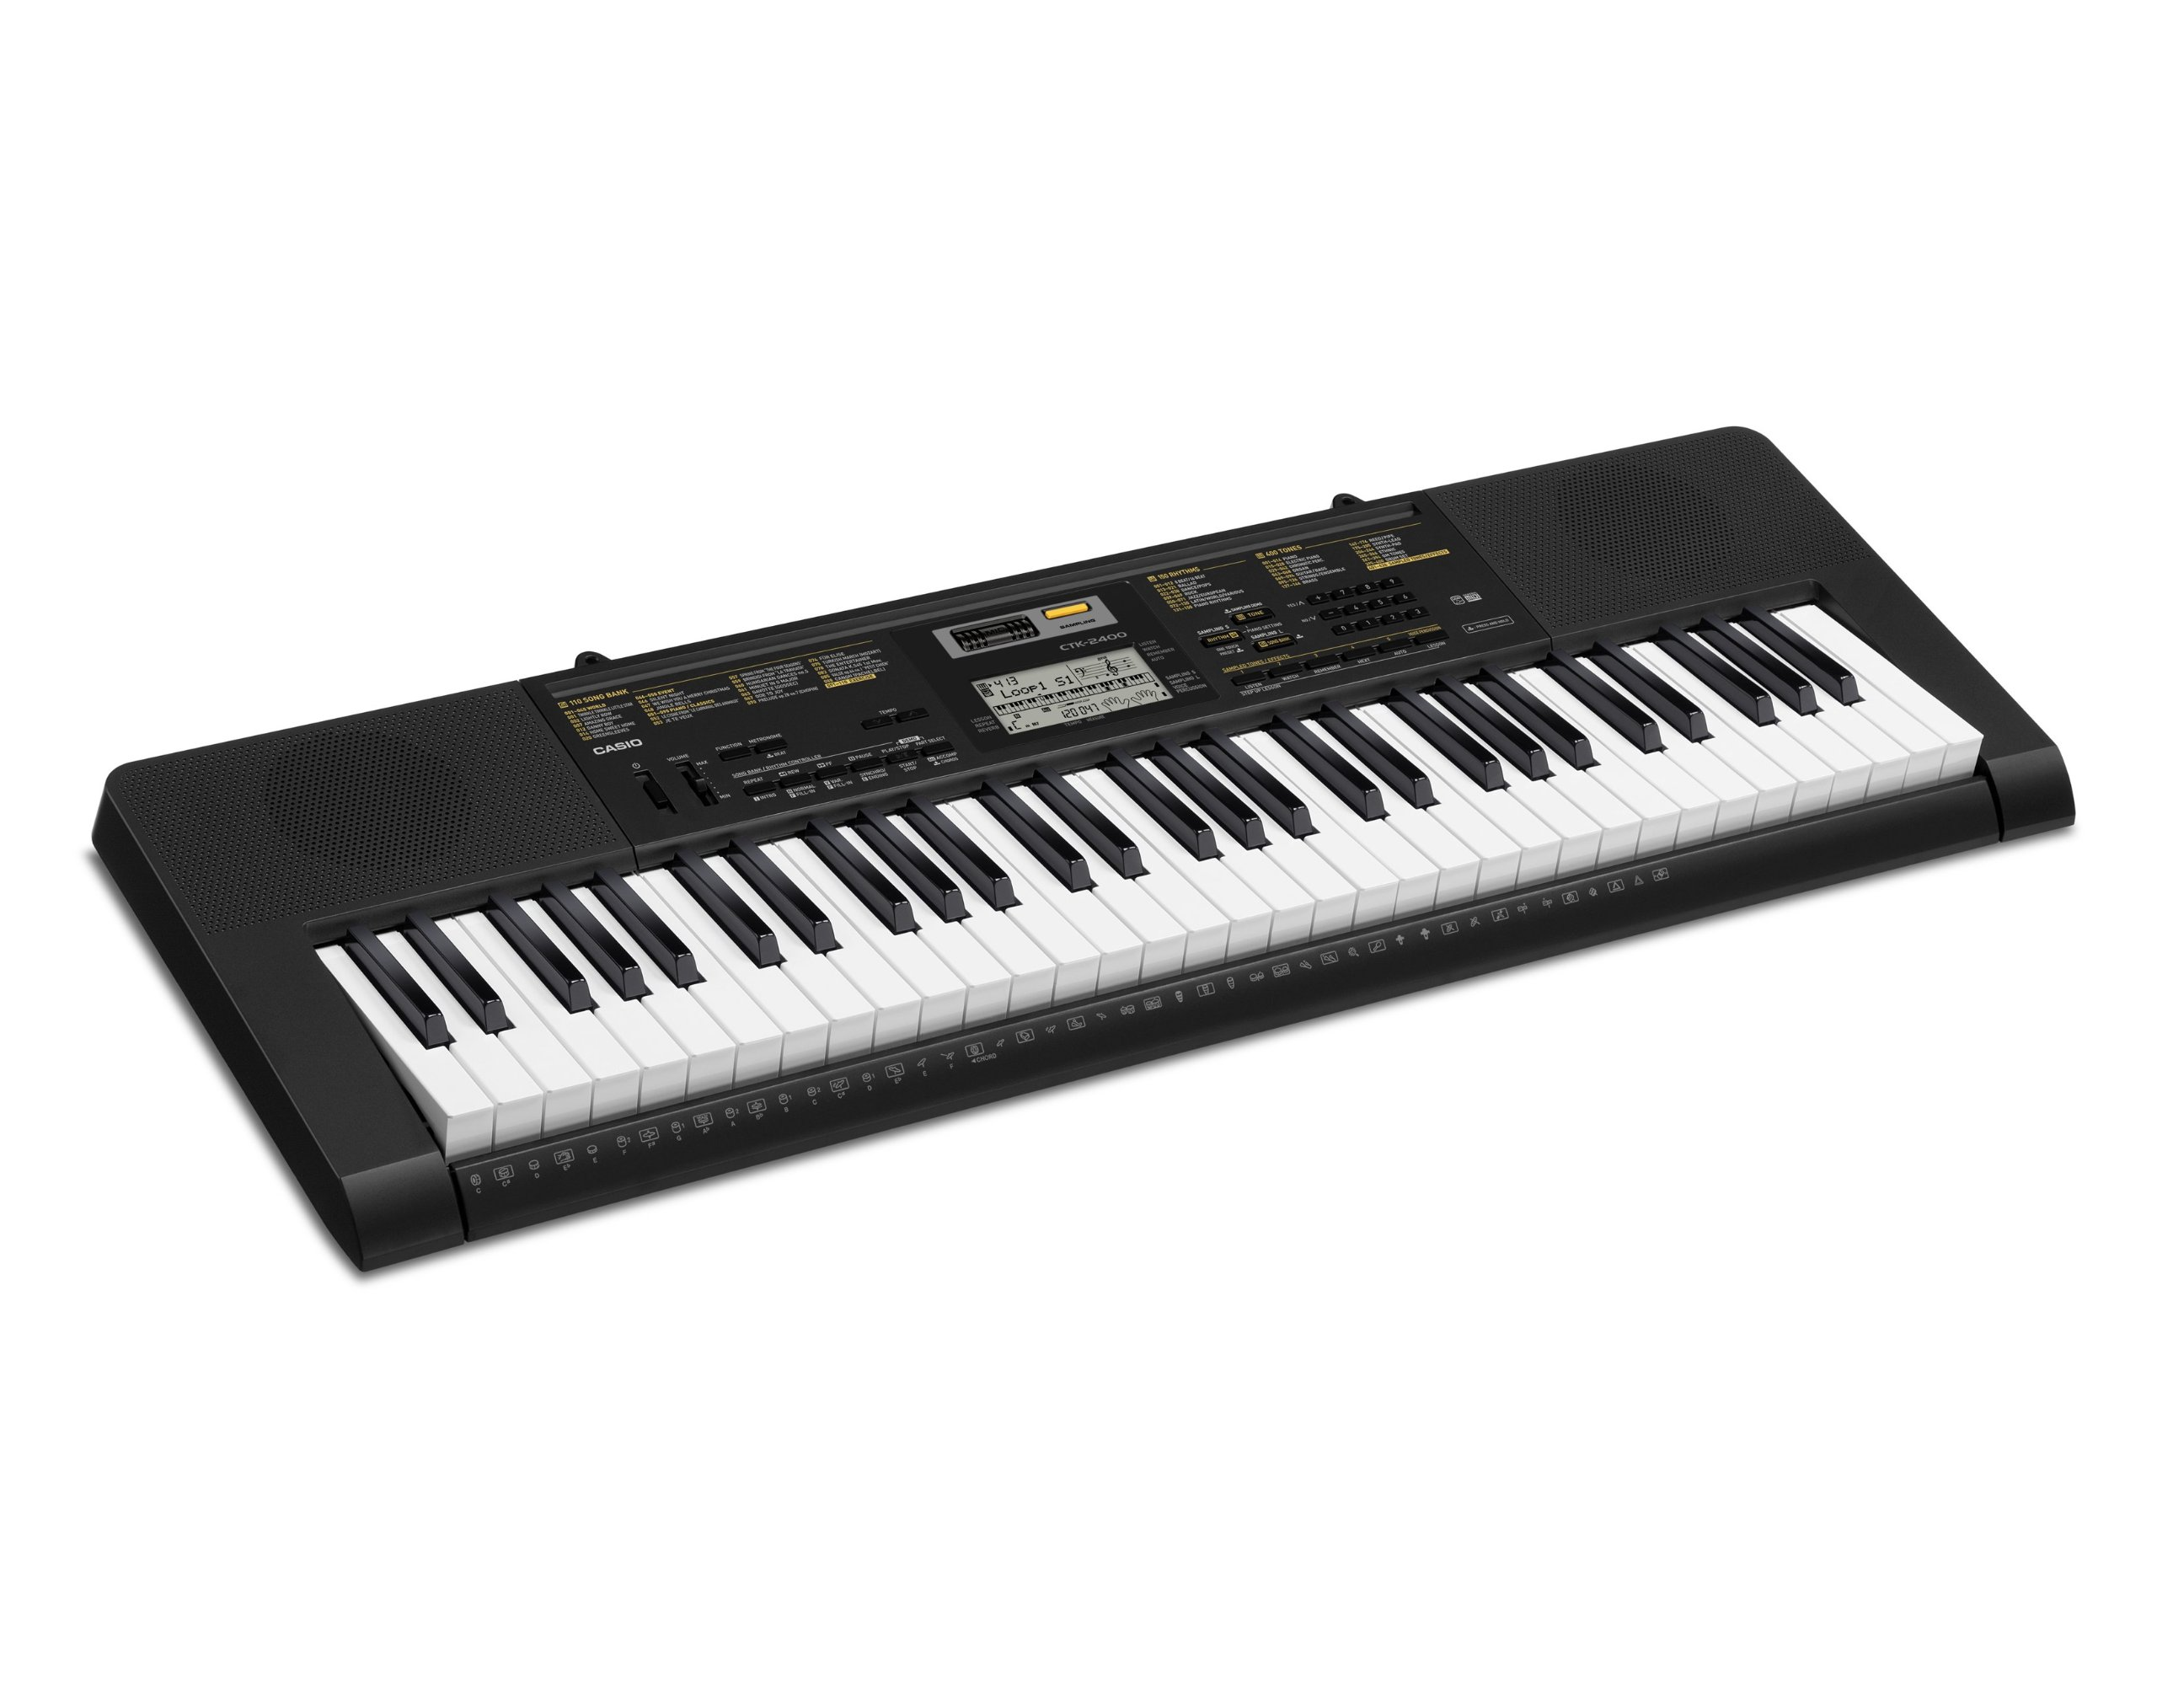 Others - Casio CTK 2400 Review